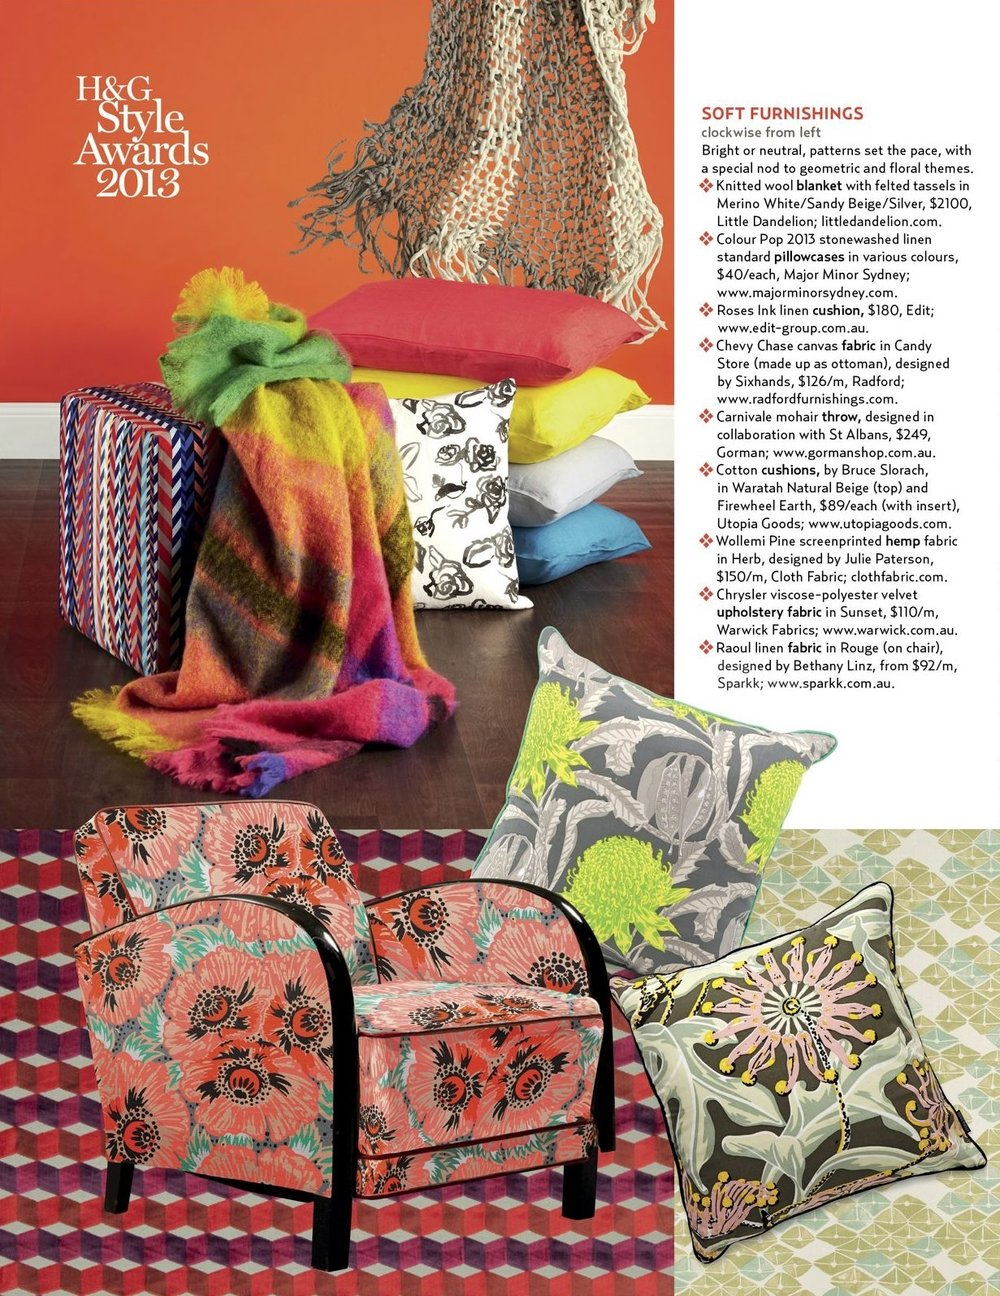 Chevy chase woven fabric ottoman in House & Garden Style Awards